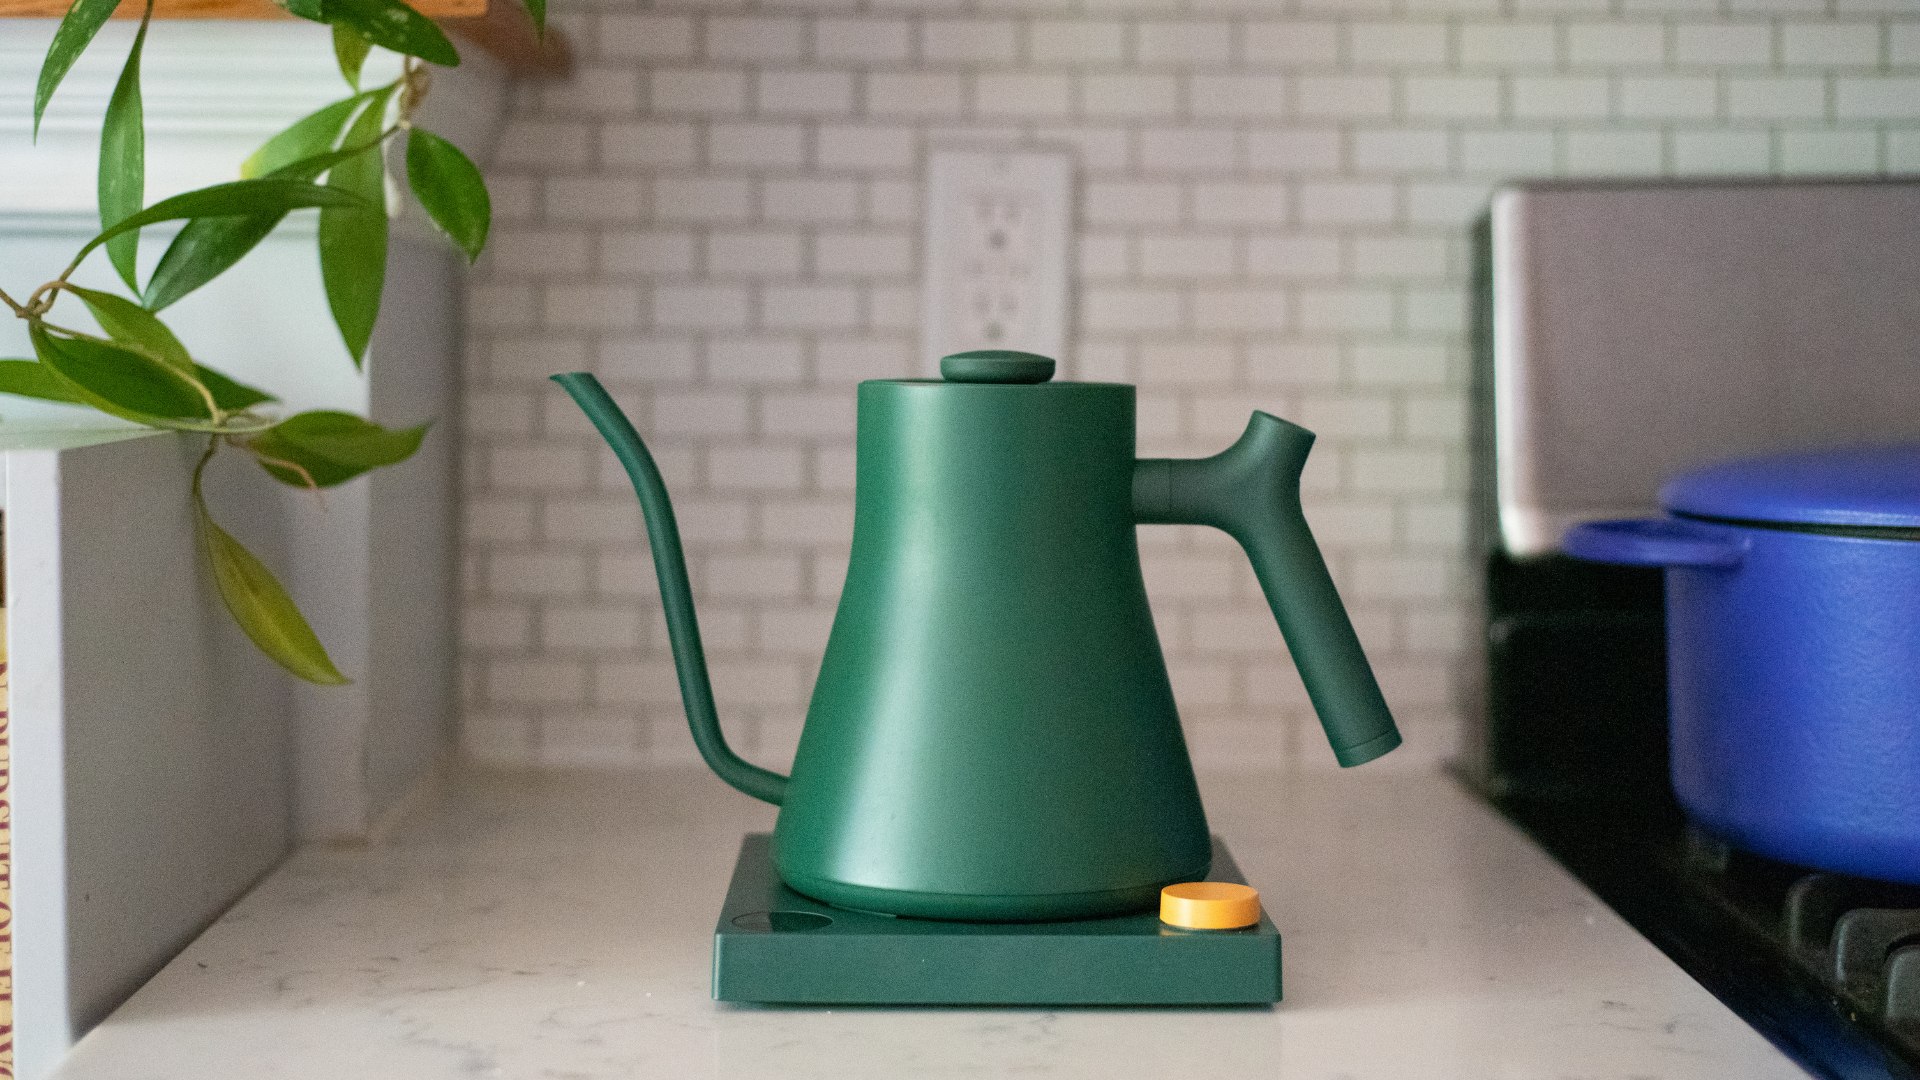 Snag this trendy, limited edition kettle before it sells out